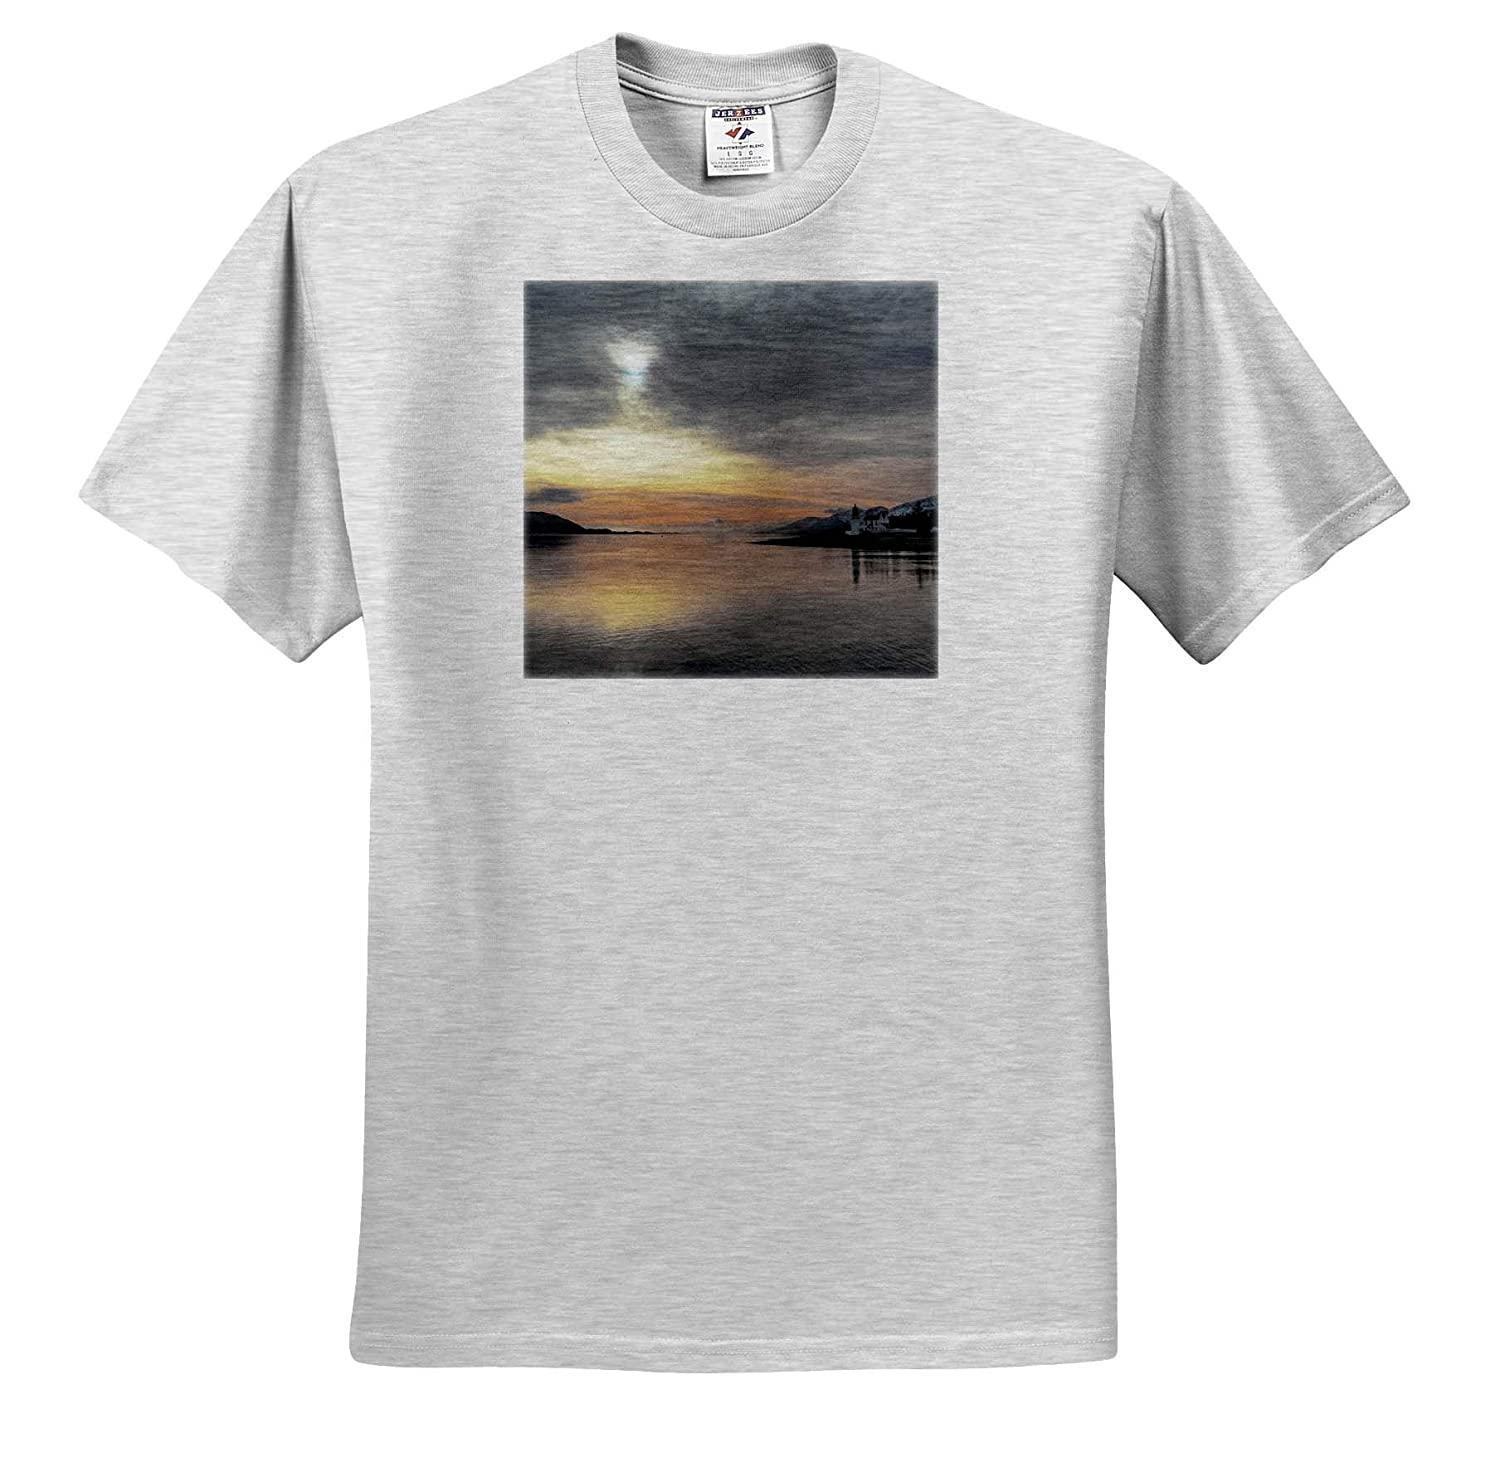 Highlands of Scotland Loch View at Loch Lhinne T-Shirts Photograph -Sunset View 3dRose Made in The Highlands